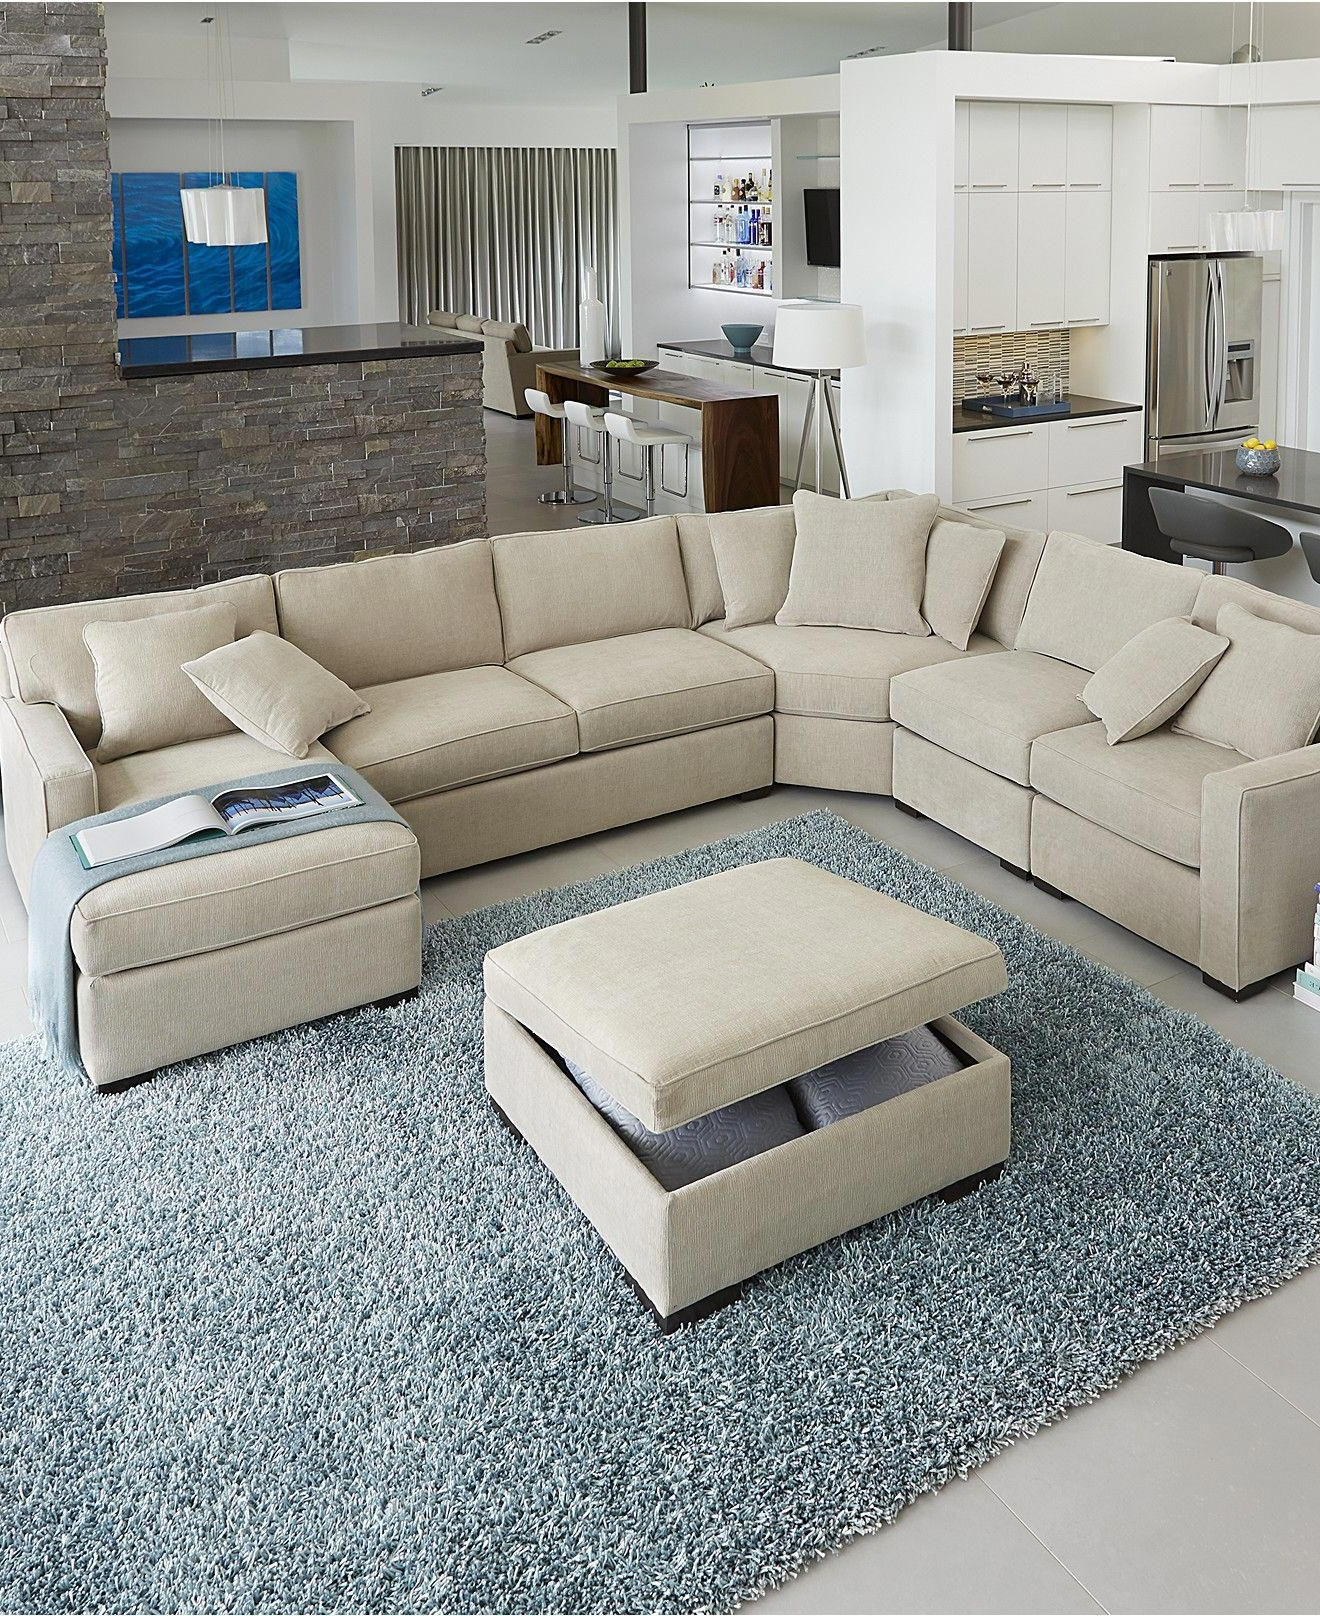 Kerri 2 Piece Sectionals With Laf Chaise Regarding Most Up To Date List Of Pinterest Living Spaces Furniture Sectional Sofas Layout (Gallery 19 of 20)